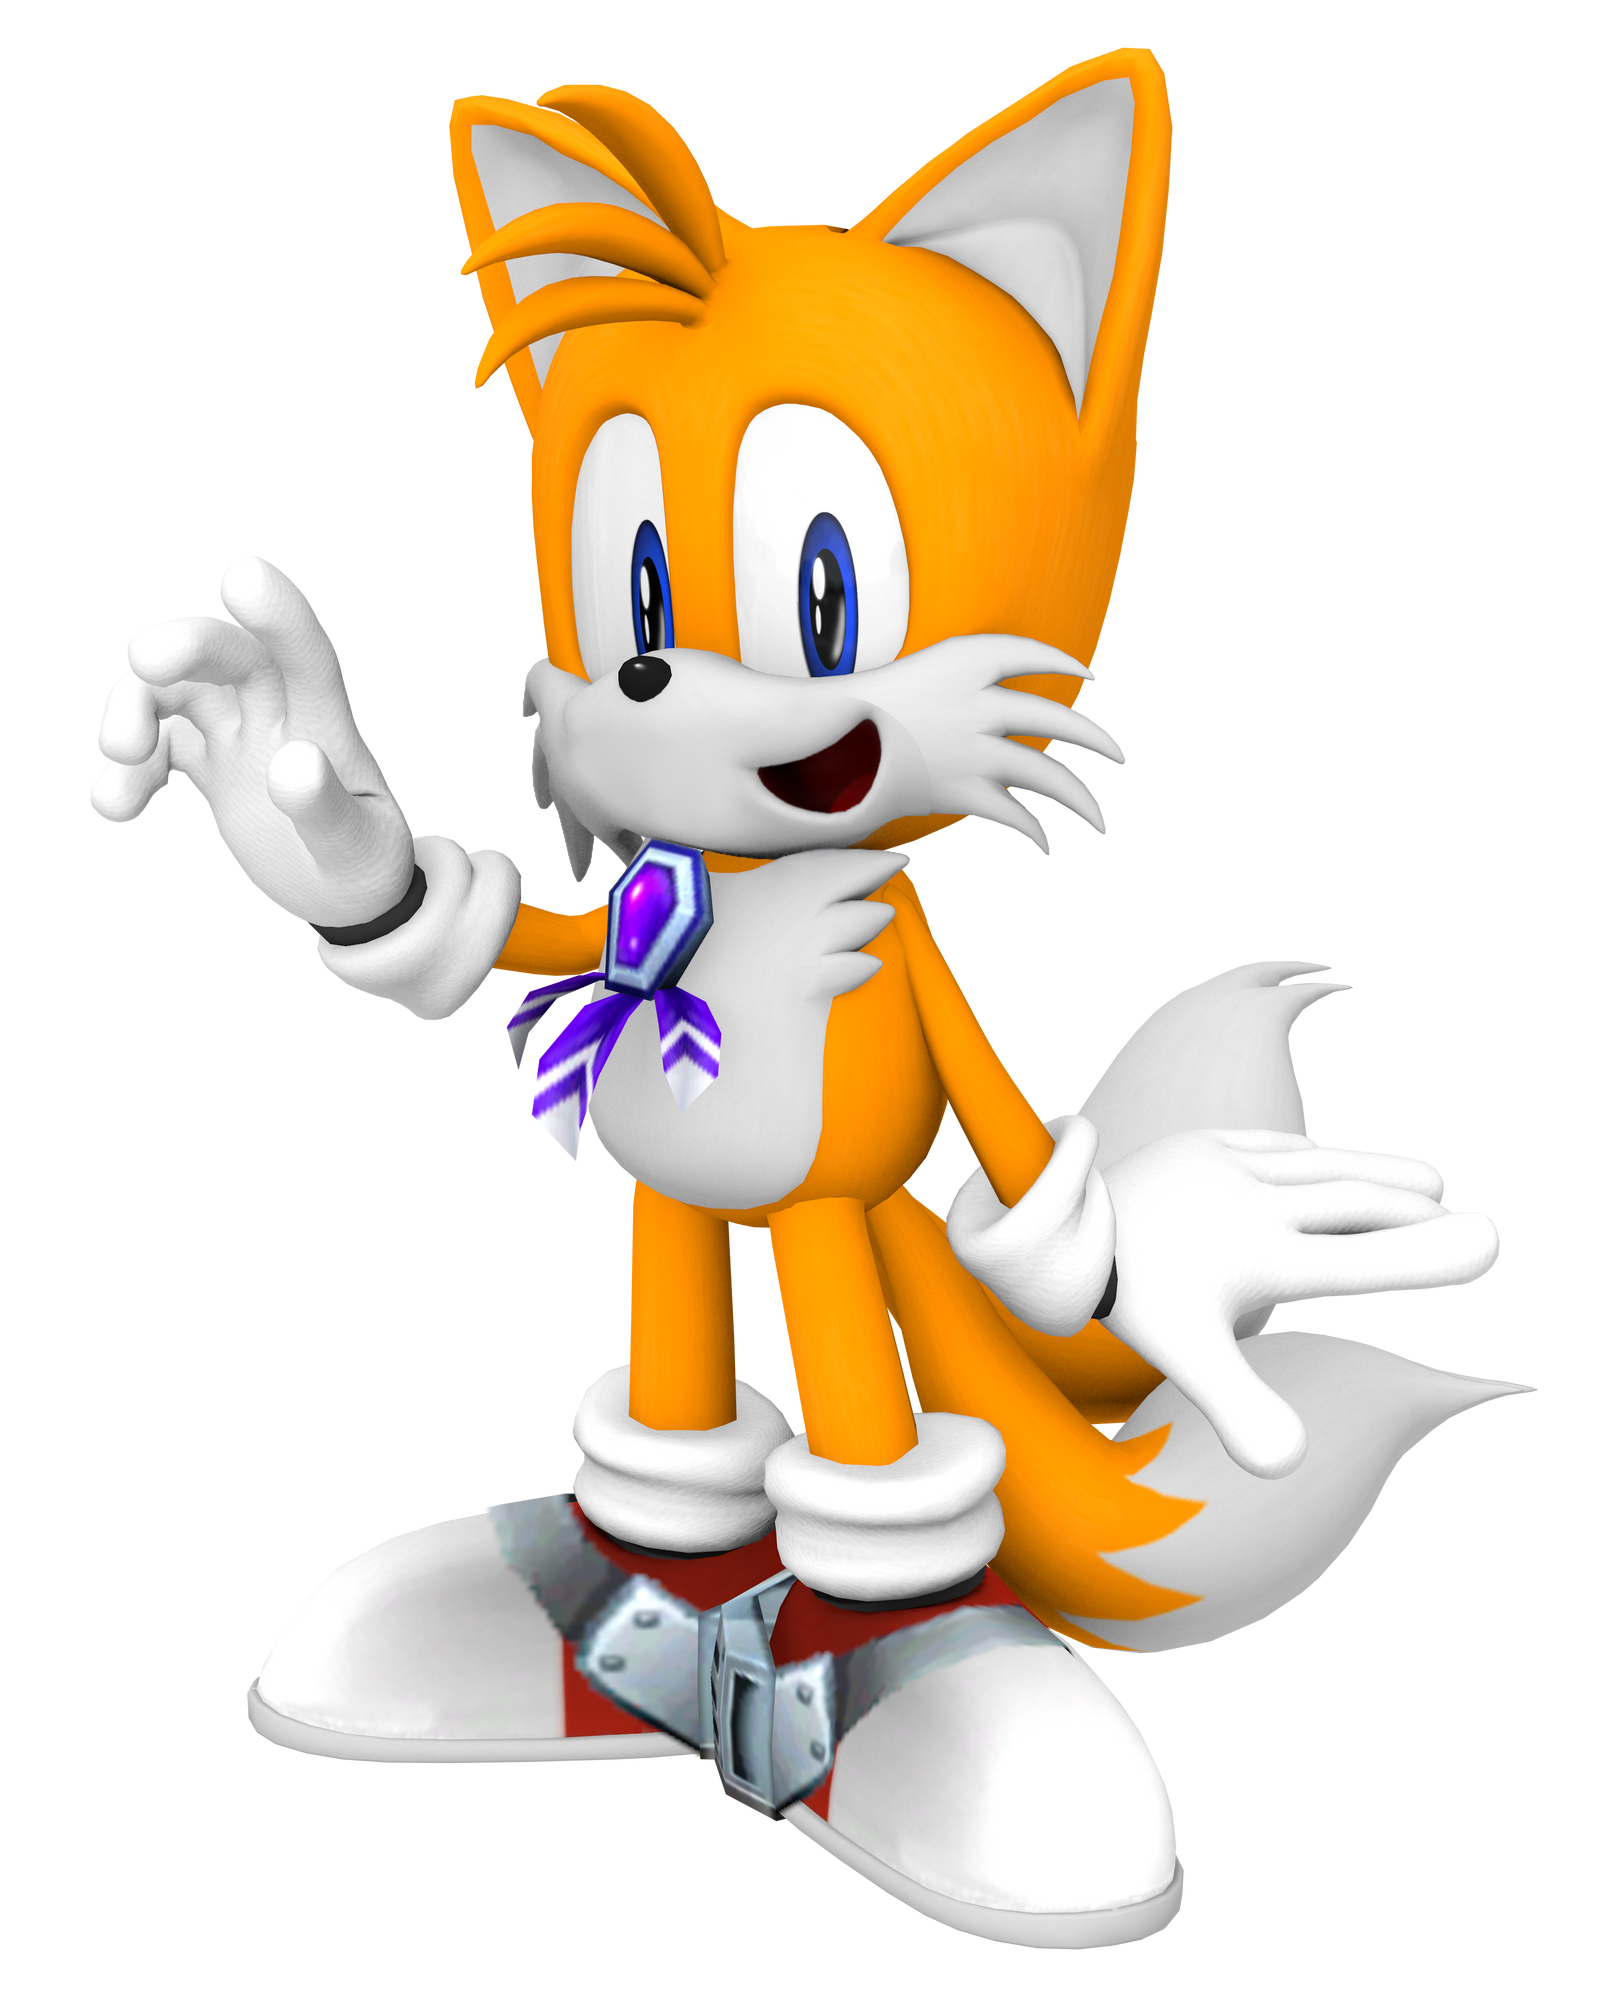 dreamcast_tails_legacy_render_by_bandico